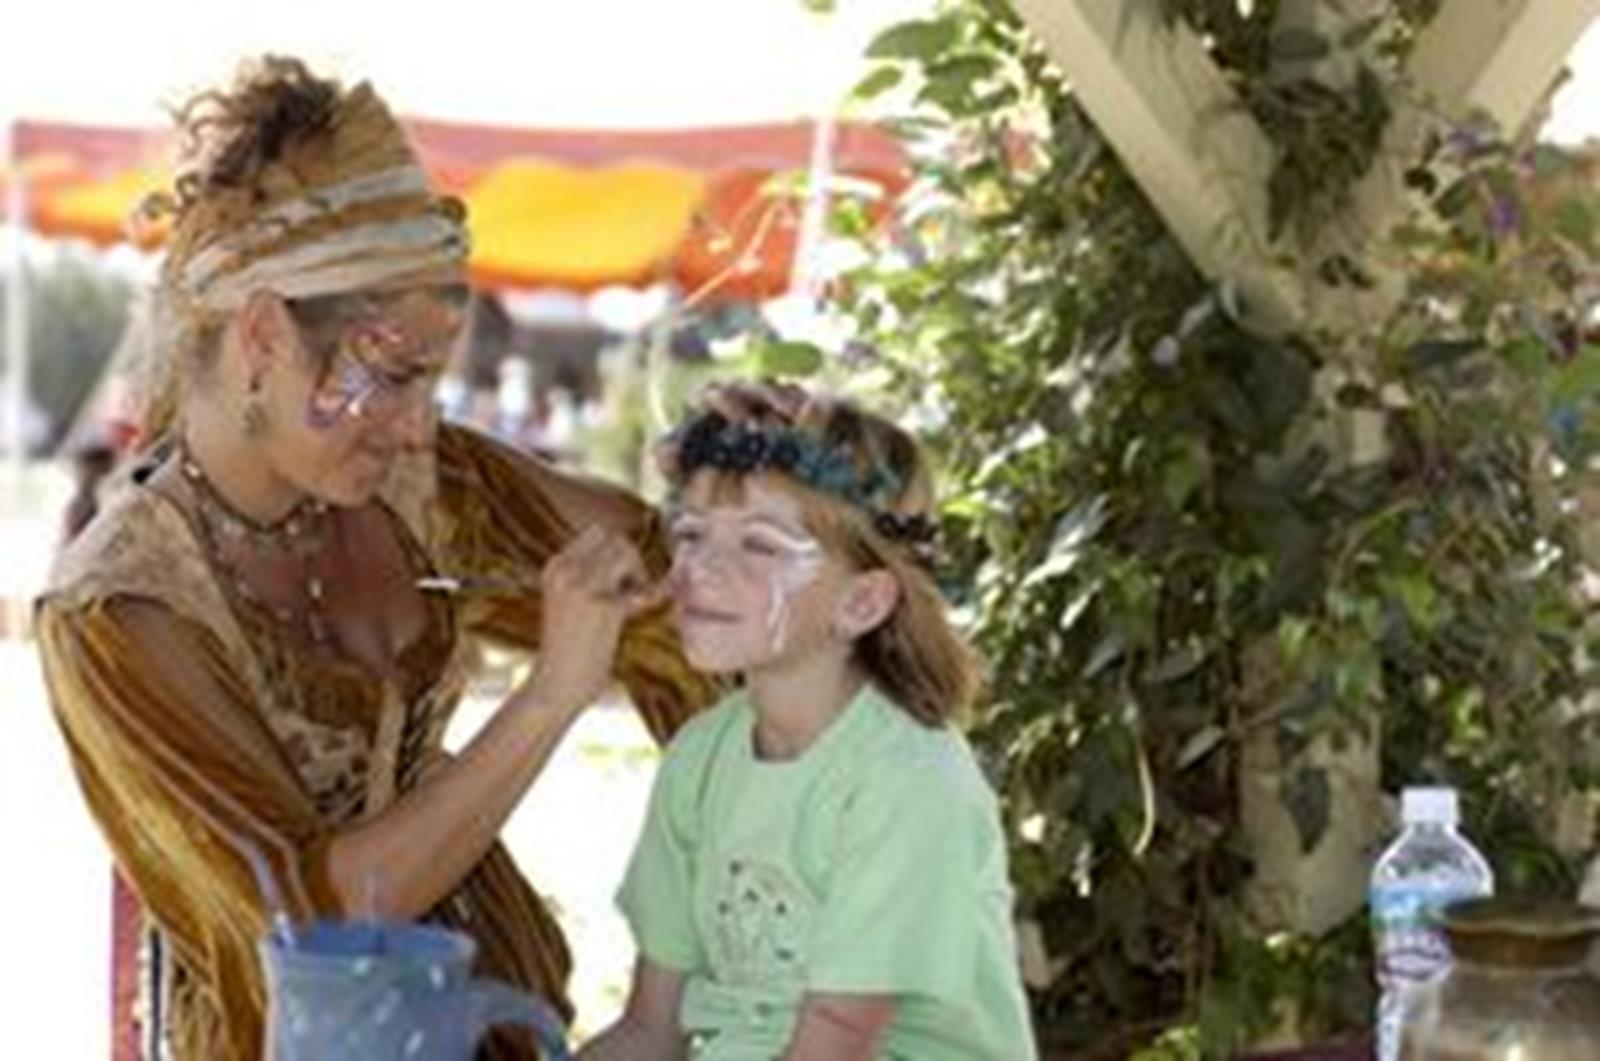 enjoy-the-endless-festitivies-including-its-famous-face-painting-at-the-Carolina-Renniaaance-Festival.